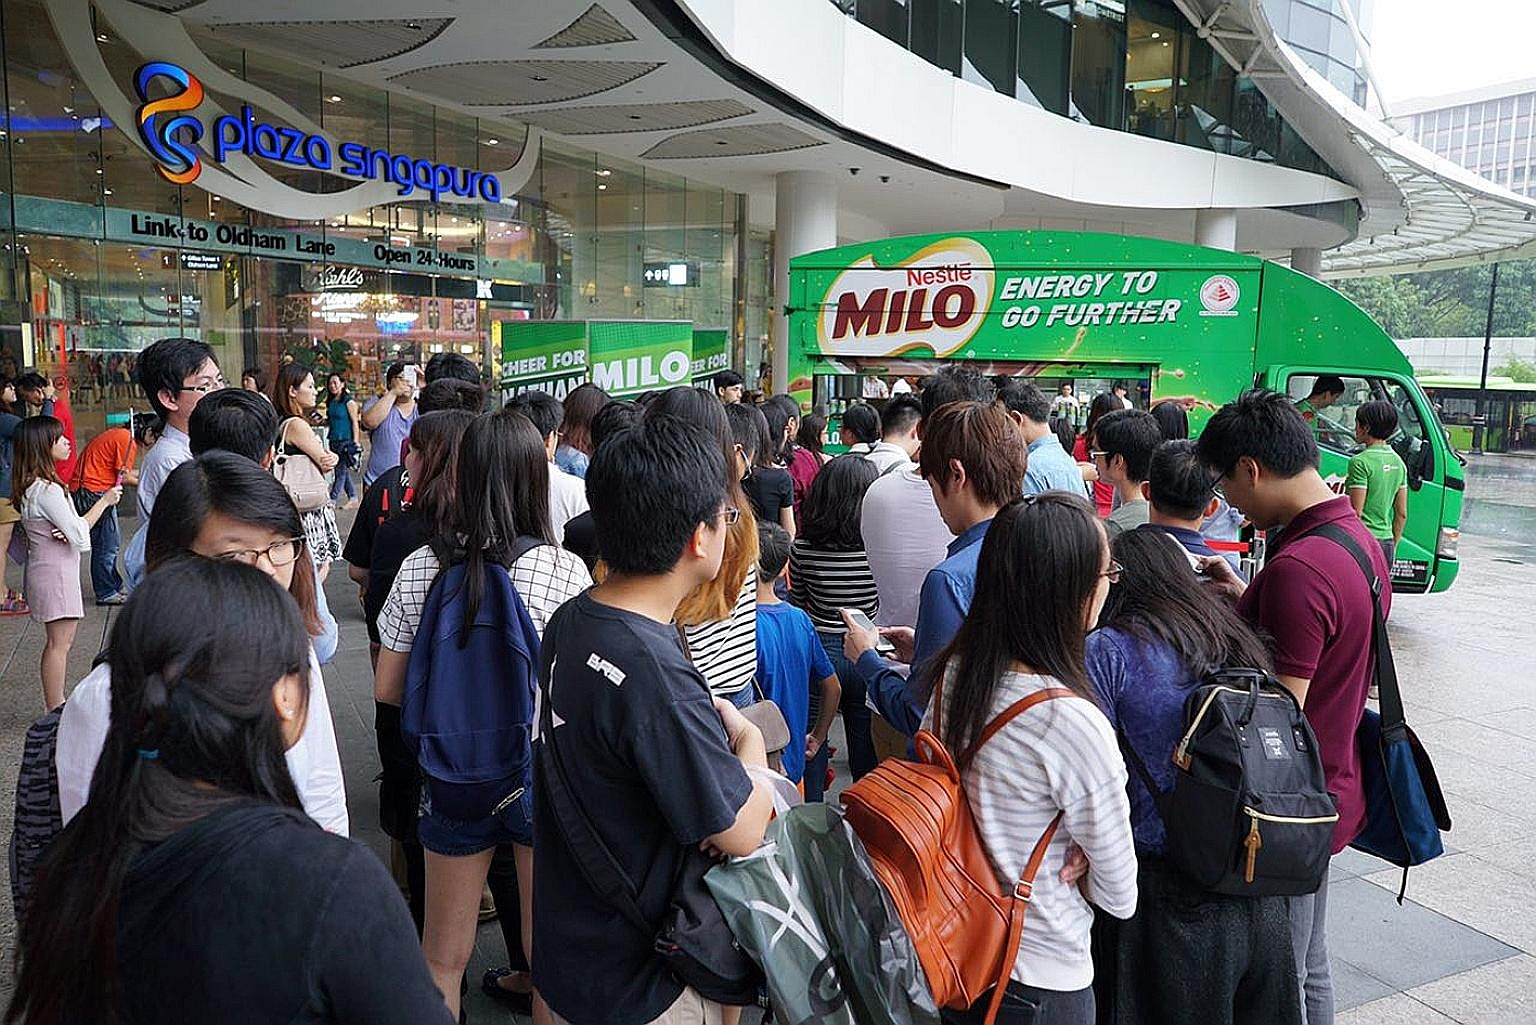 Fox News correspondent Jesse Watters' interviews with Asians about the US election have come under fire for being racist. A Milo van giving away free cups of iced Milo at Plaza Singapura last Friday, in support of home-grown singer Nathan Hartono ahe